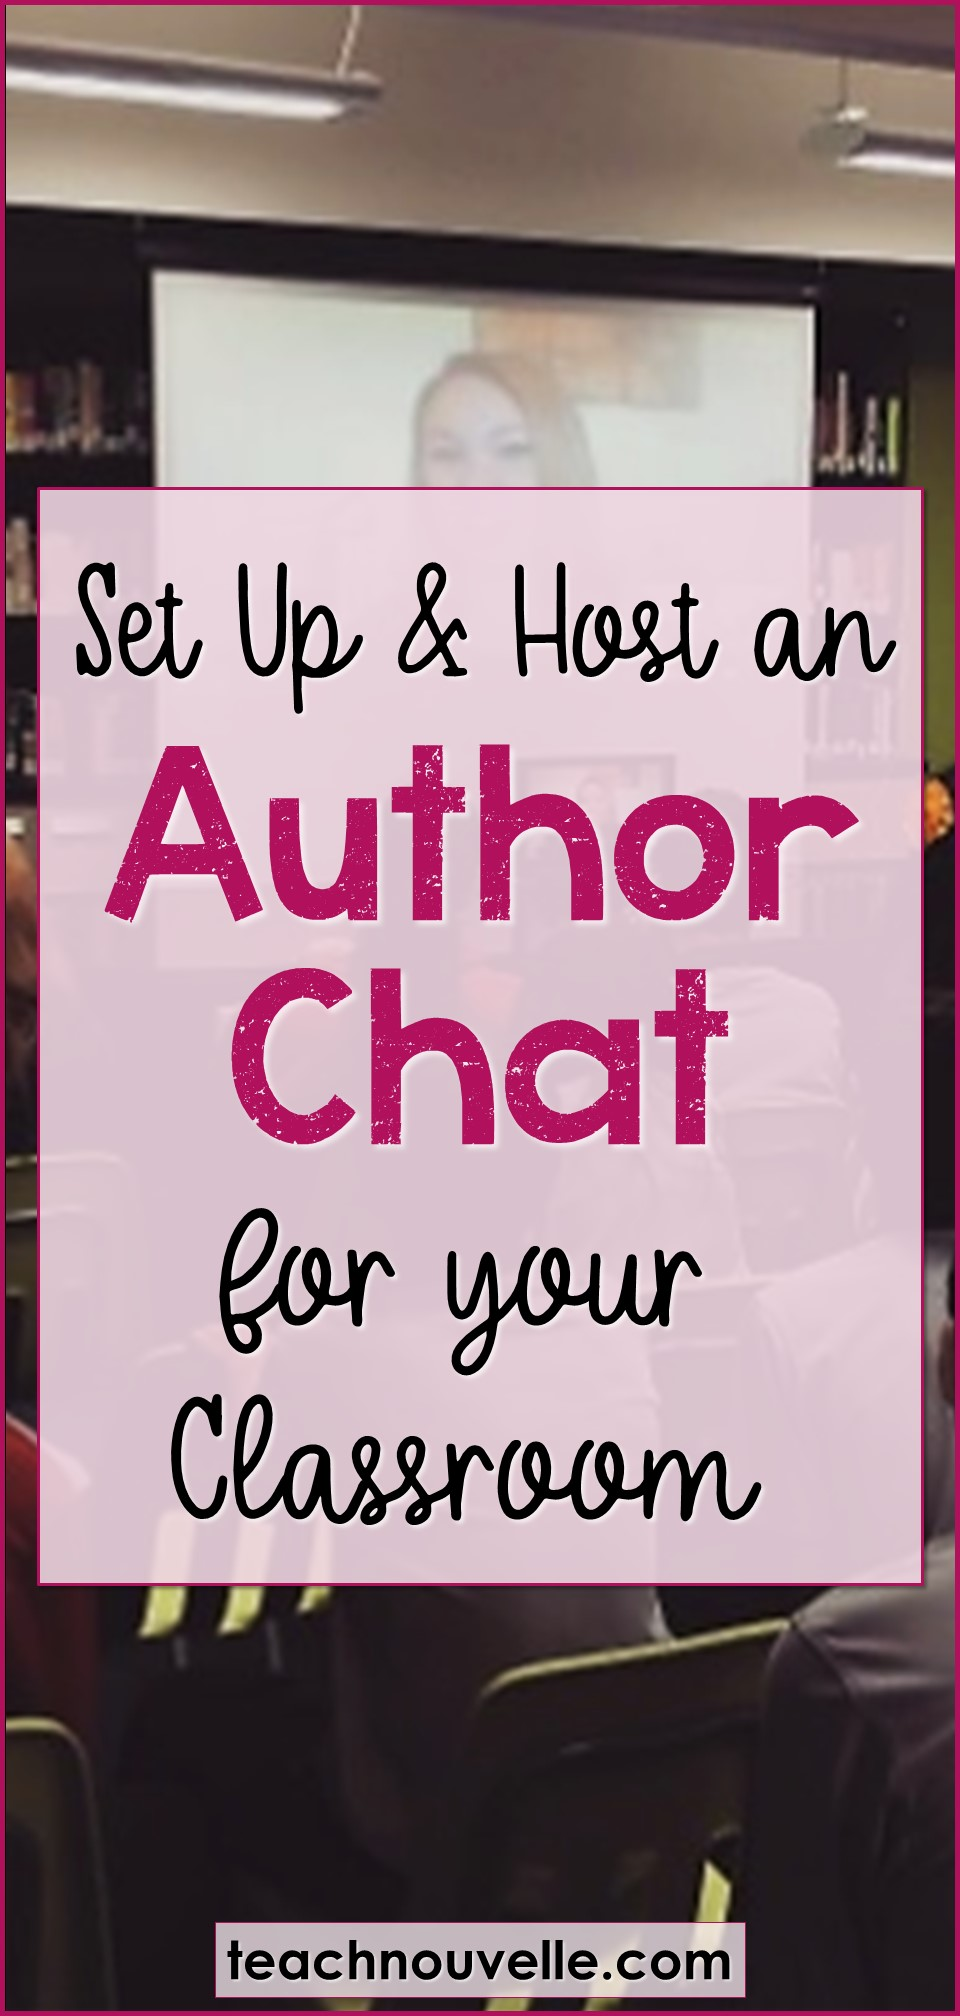 Do you want to host a classroom author chat? It's a great way to get your students invested in reading and writing. They can see the real-world person behind the work, learn about an author's craft, and ask their most pressing questions as a reader. (Read more at the blog)